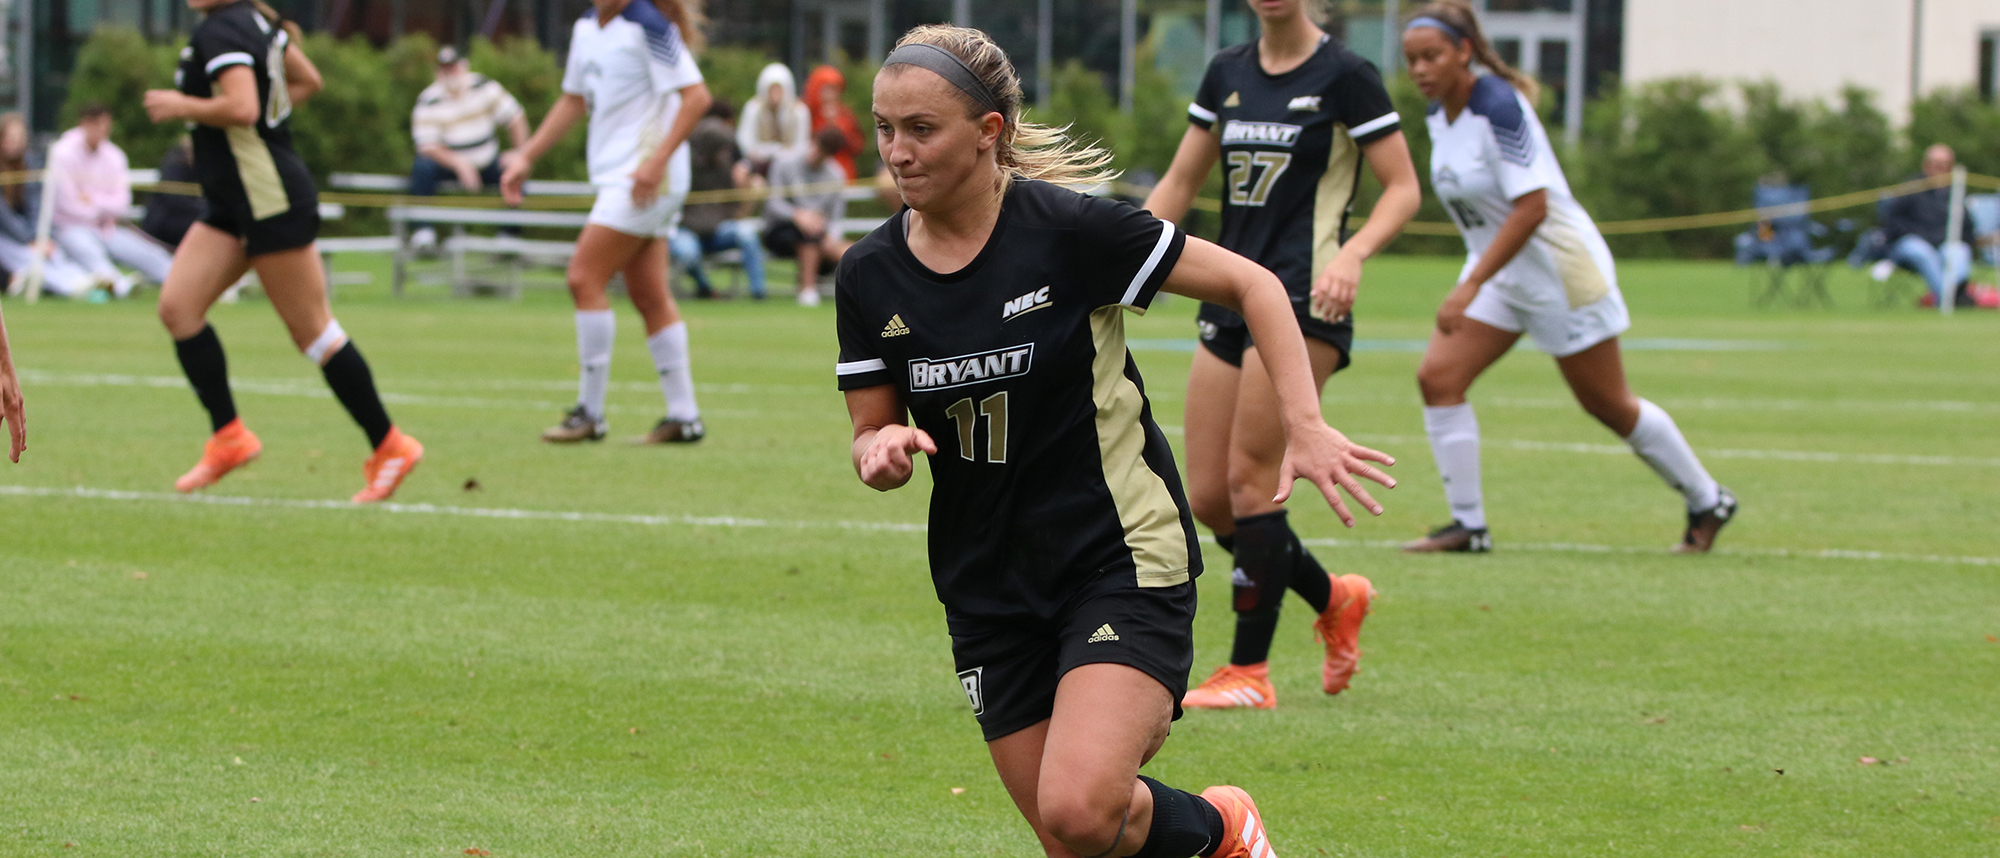 Manna's goal lifts Bryant past Wagner, 1-0